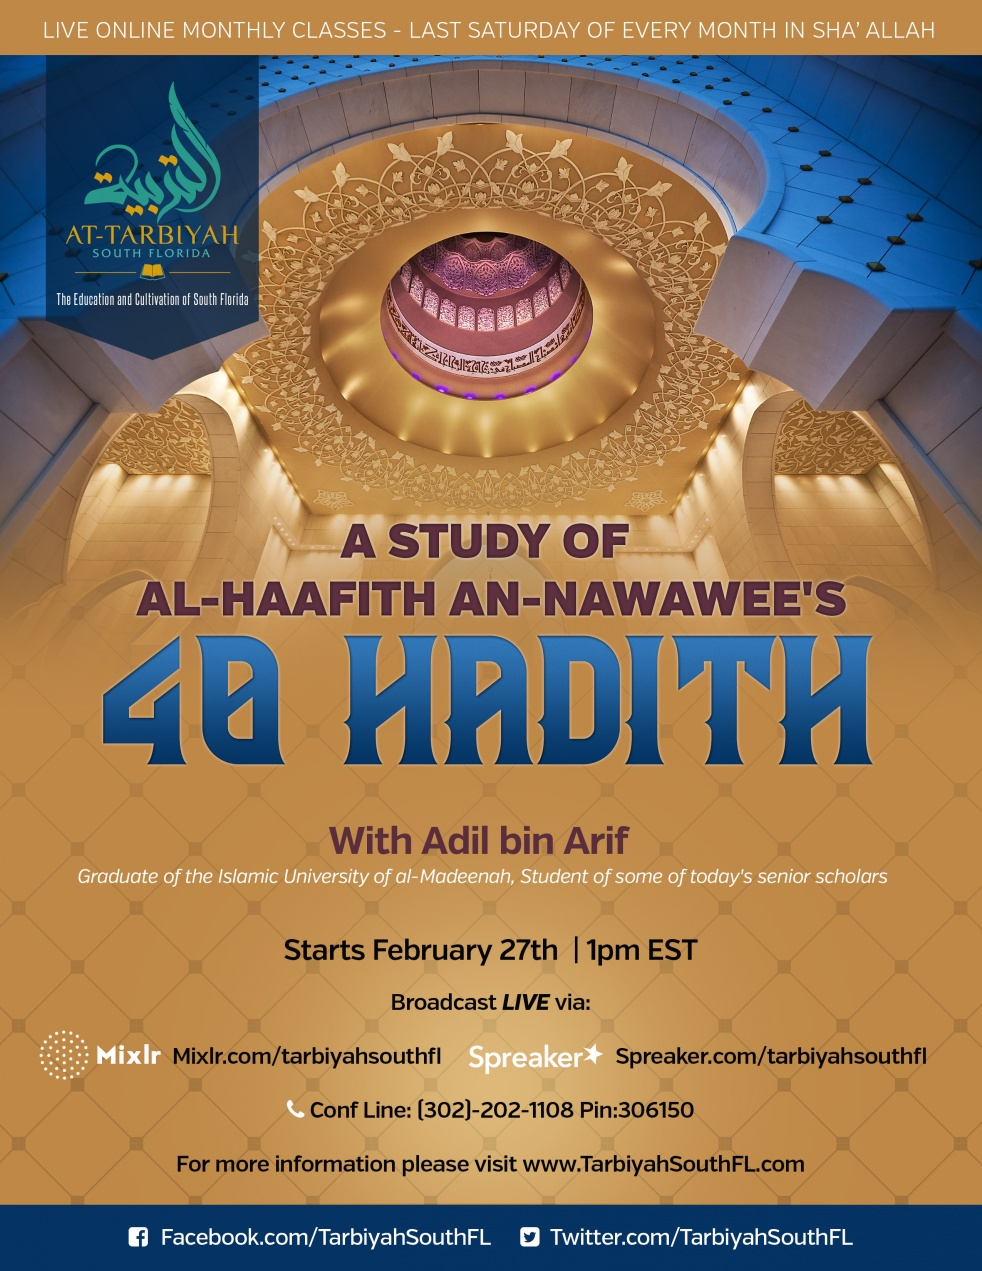 40 Hadith Study- (Last Sat of month) - Cover Image